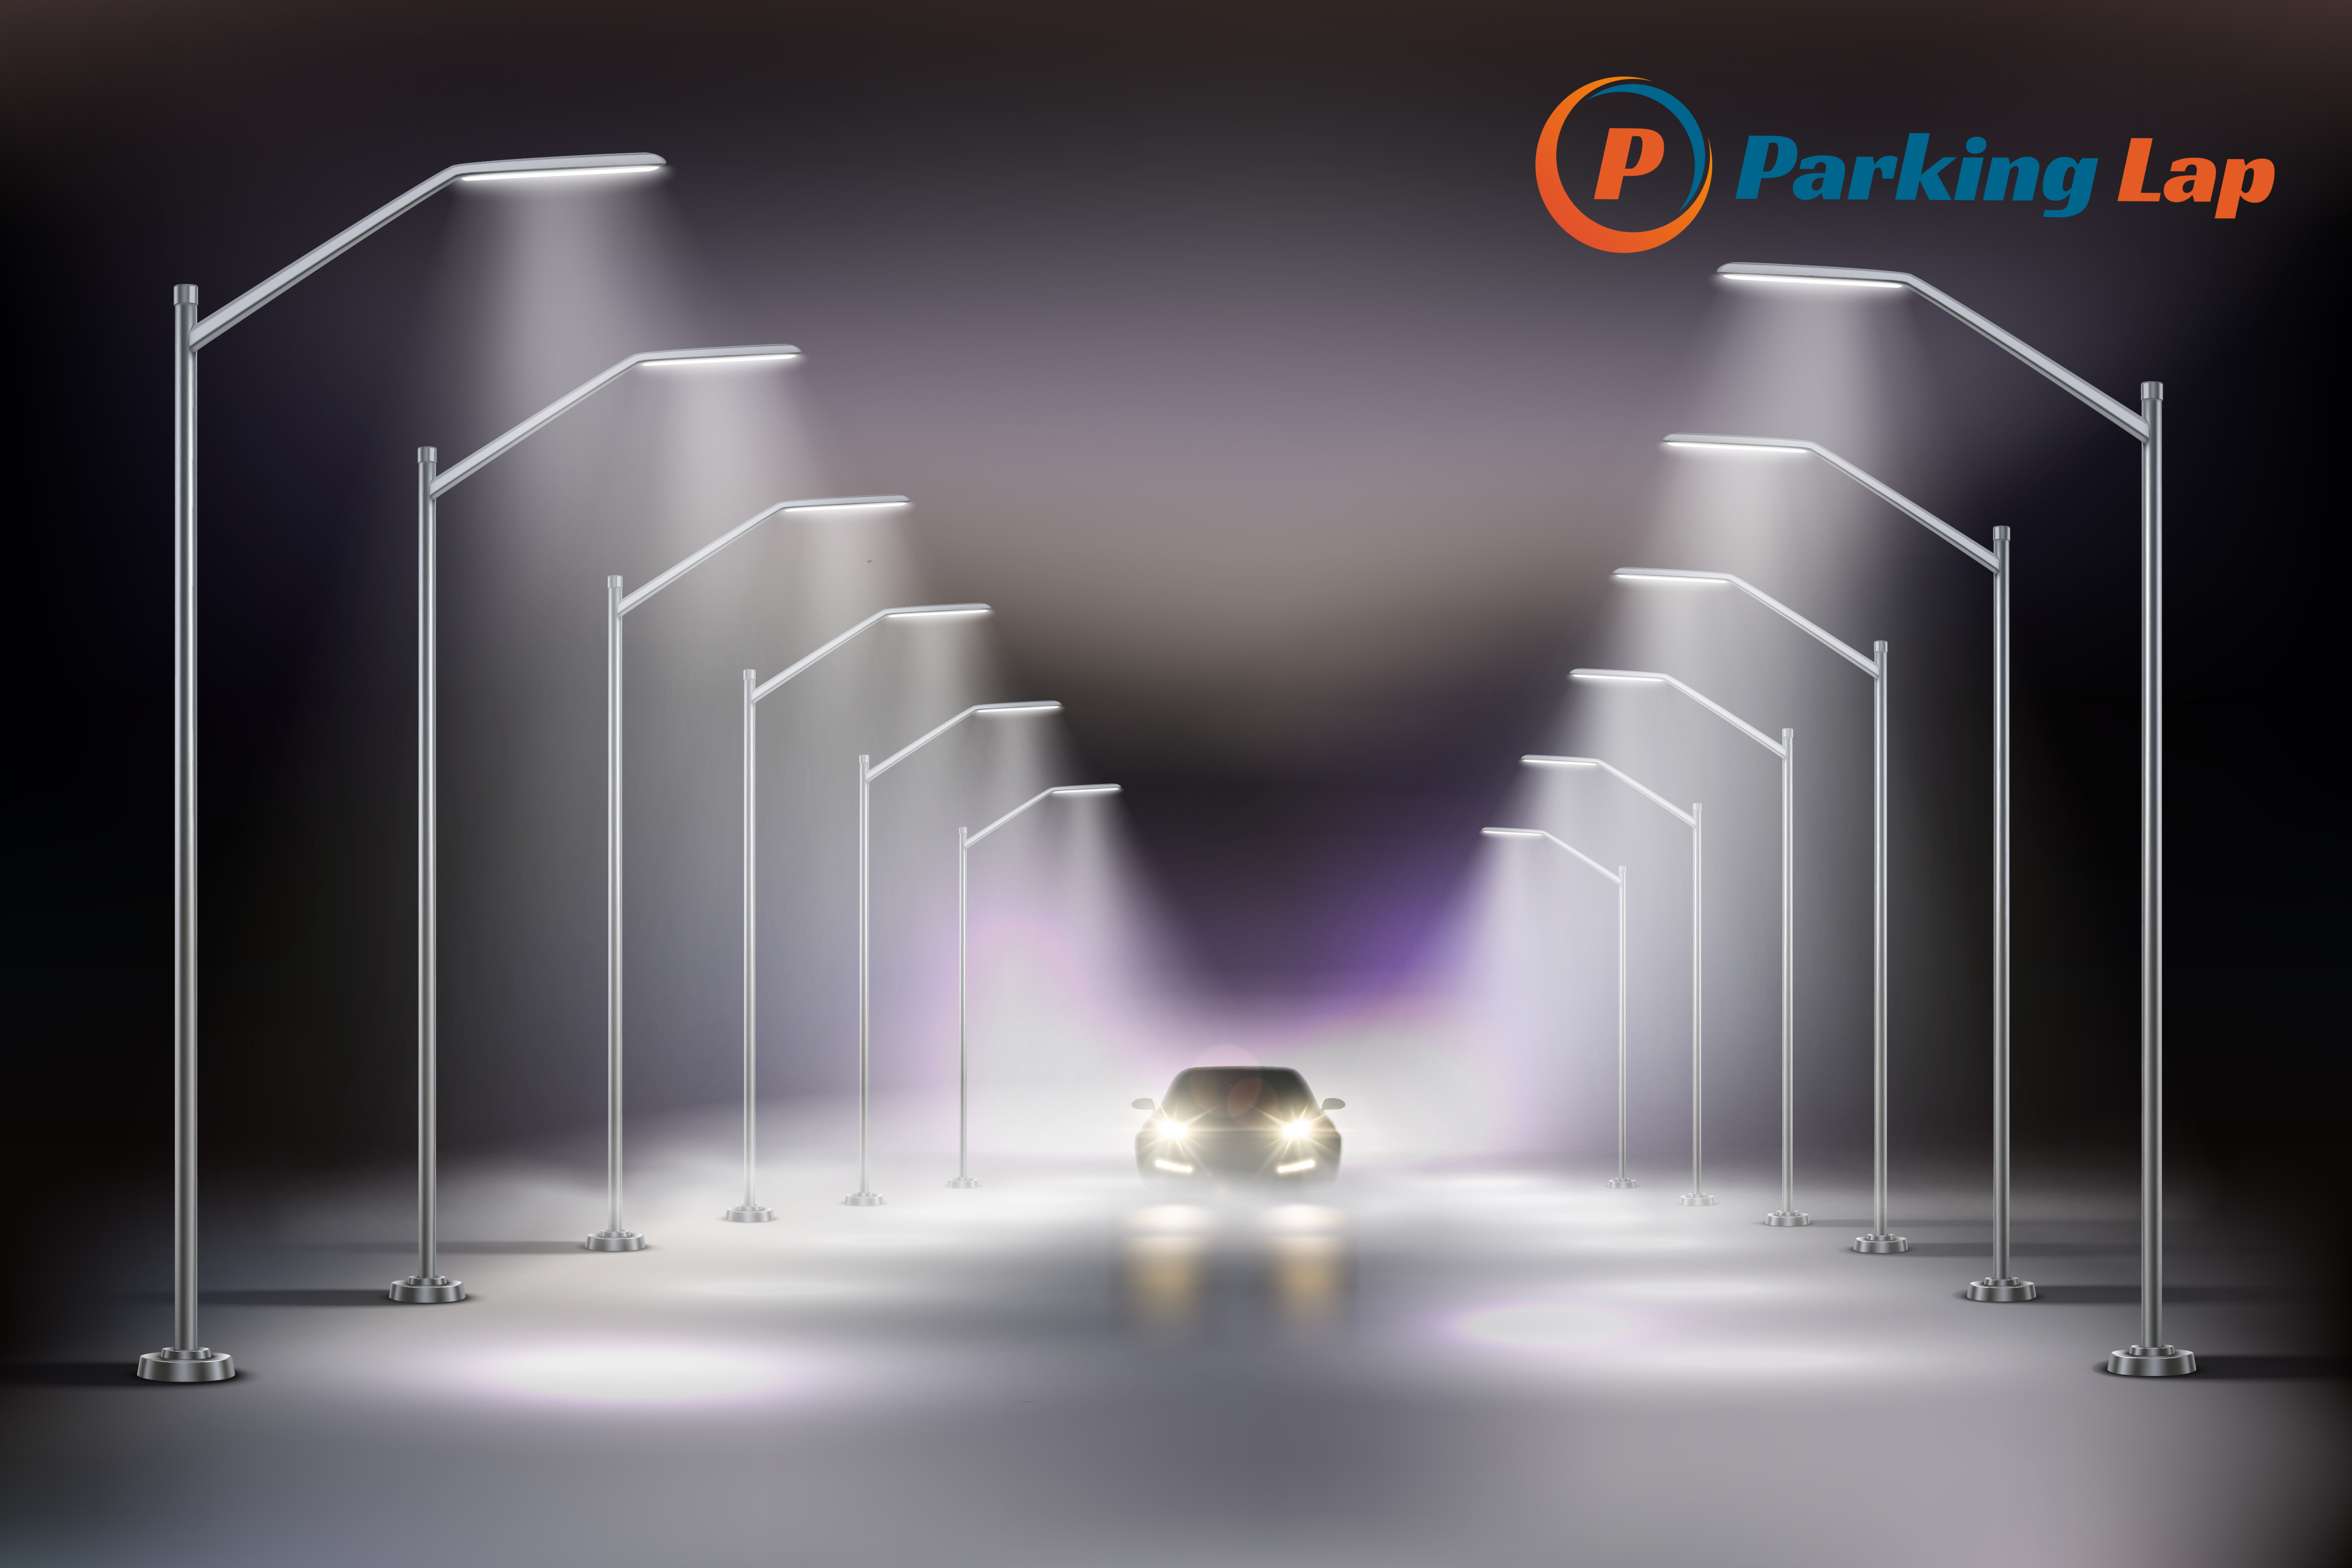 Seeking For Parking Solutions